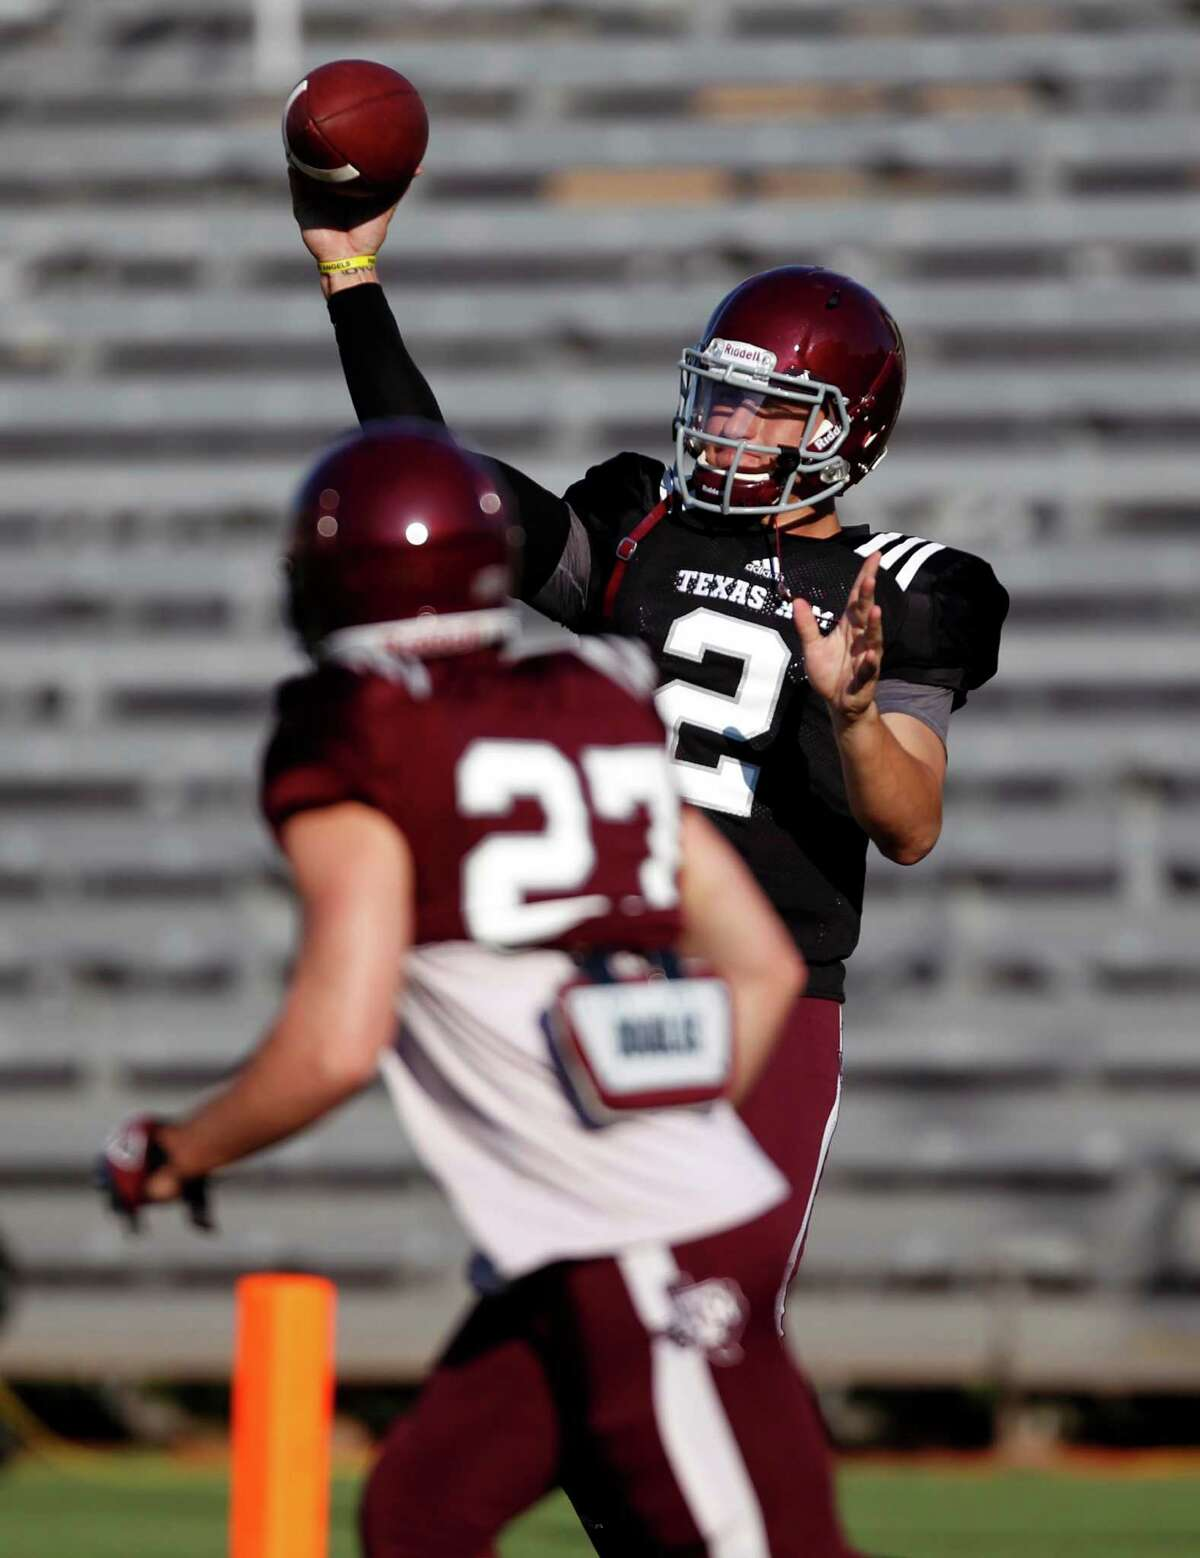 Texas A&M quarterback Johnny Manziel (2) throws a pass to Brice Dolezal before an intersquad scrimmage game, Saturday, August 17, 2013 at Kyle Field in College Station, TX.